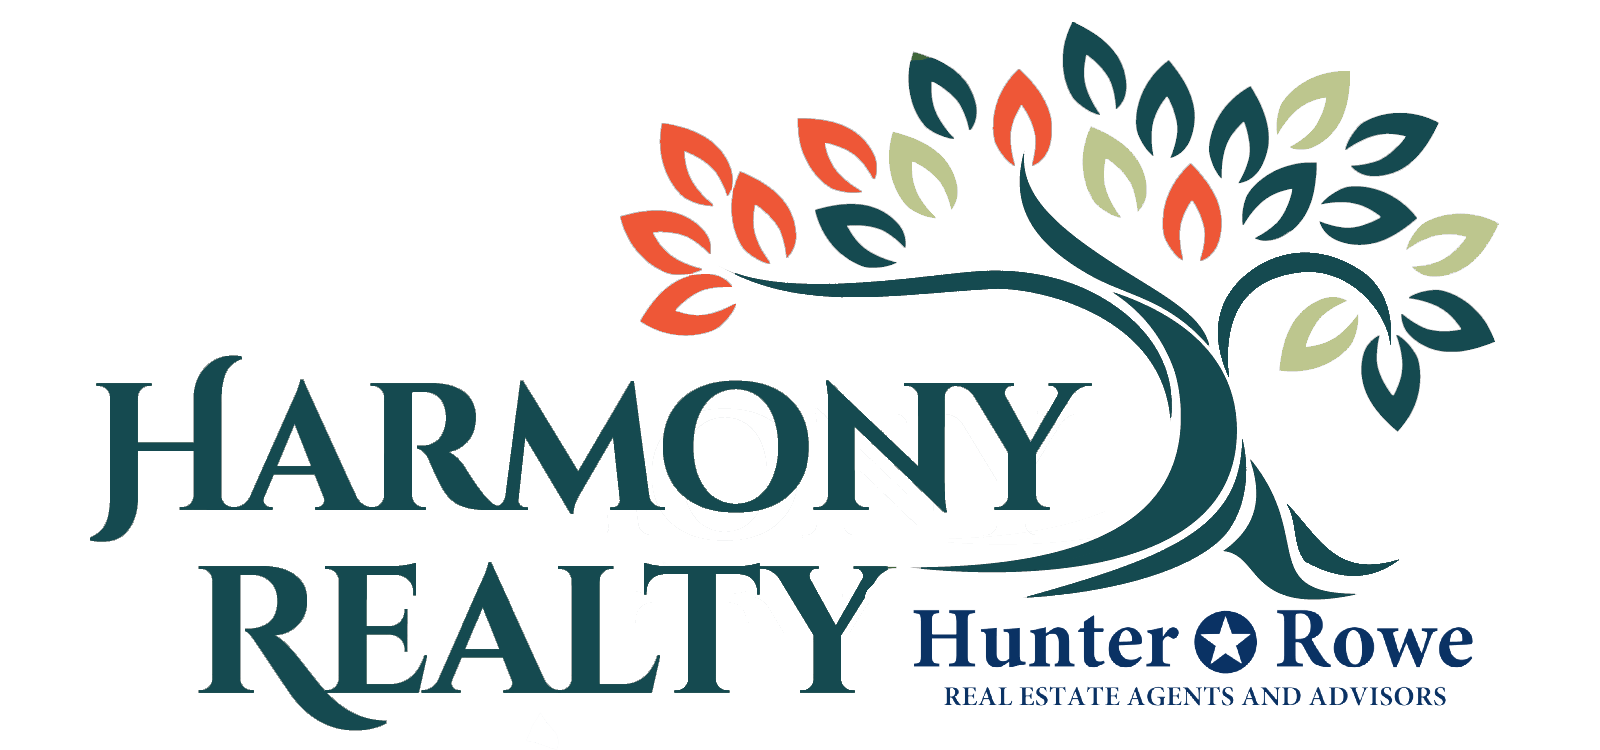 Harmony Realty Triangle